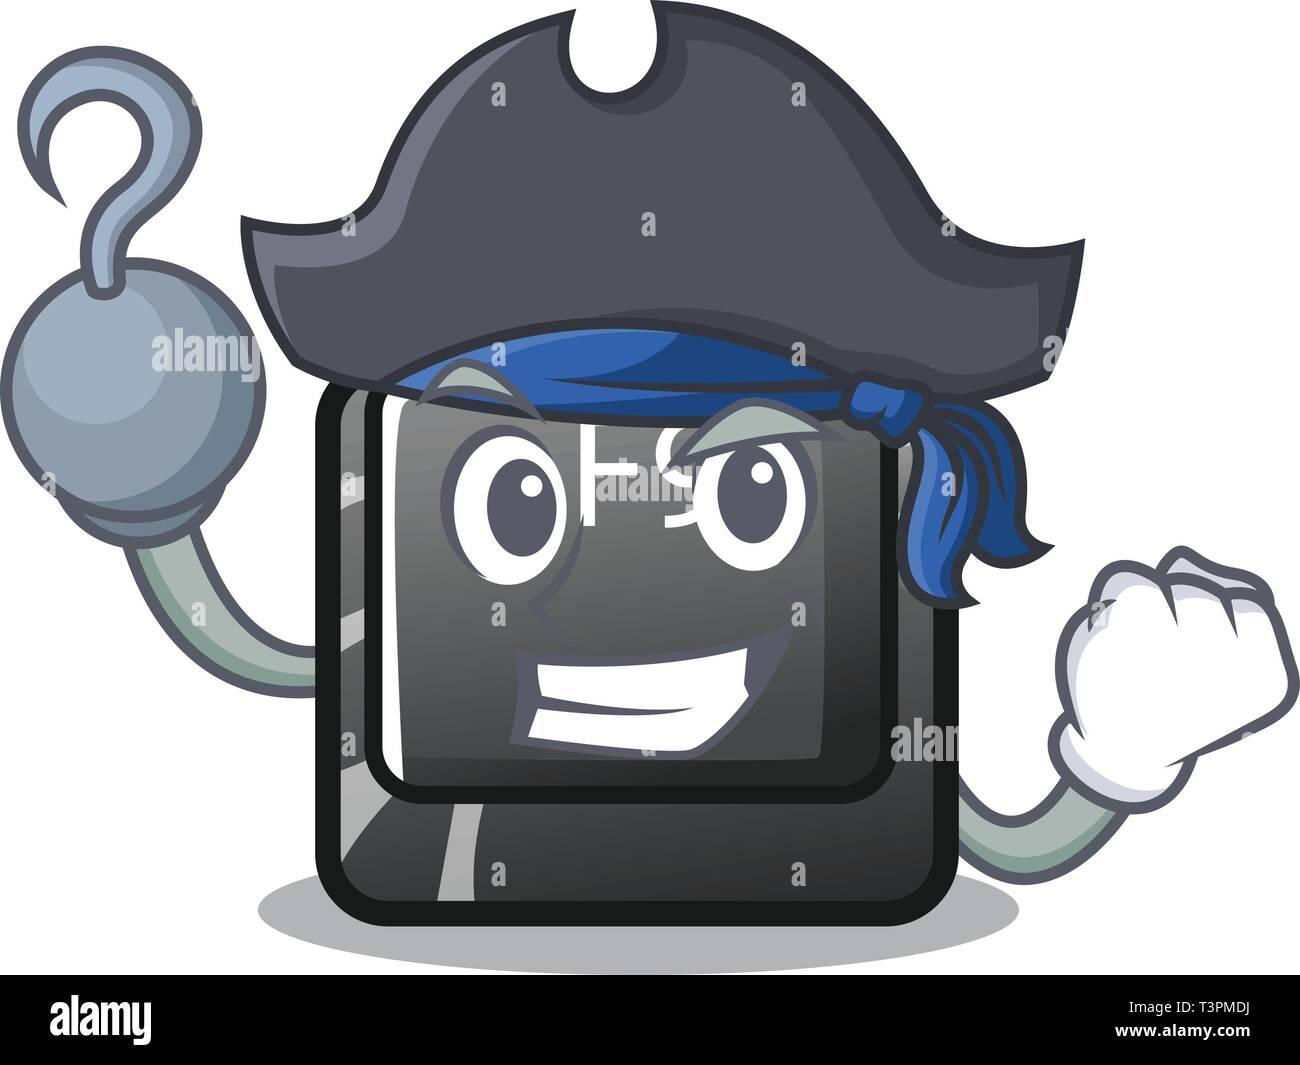 Pirate button f9 isolated in the mascot - Stock Image